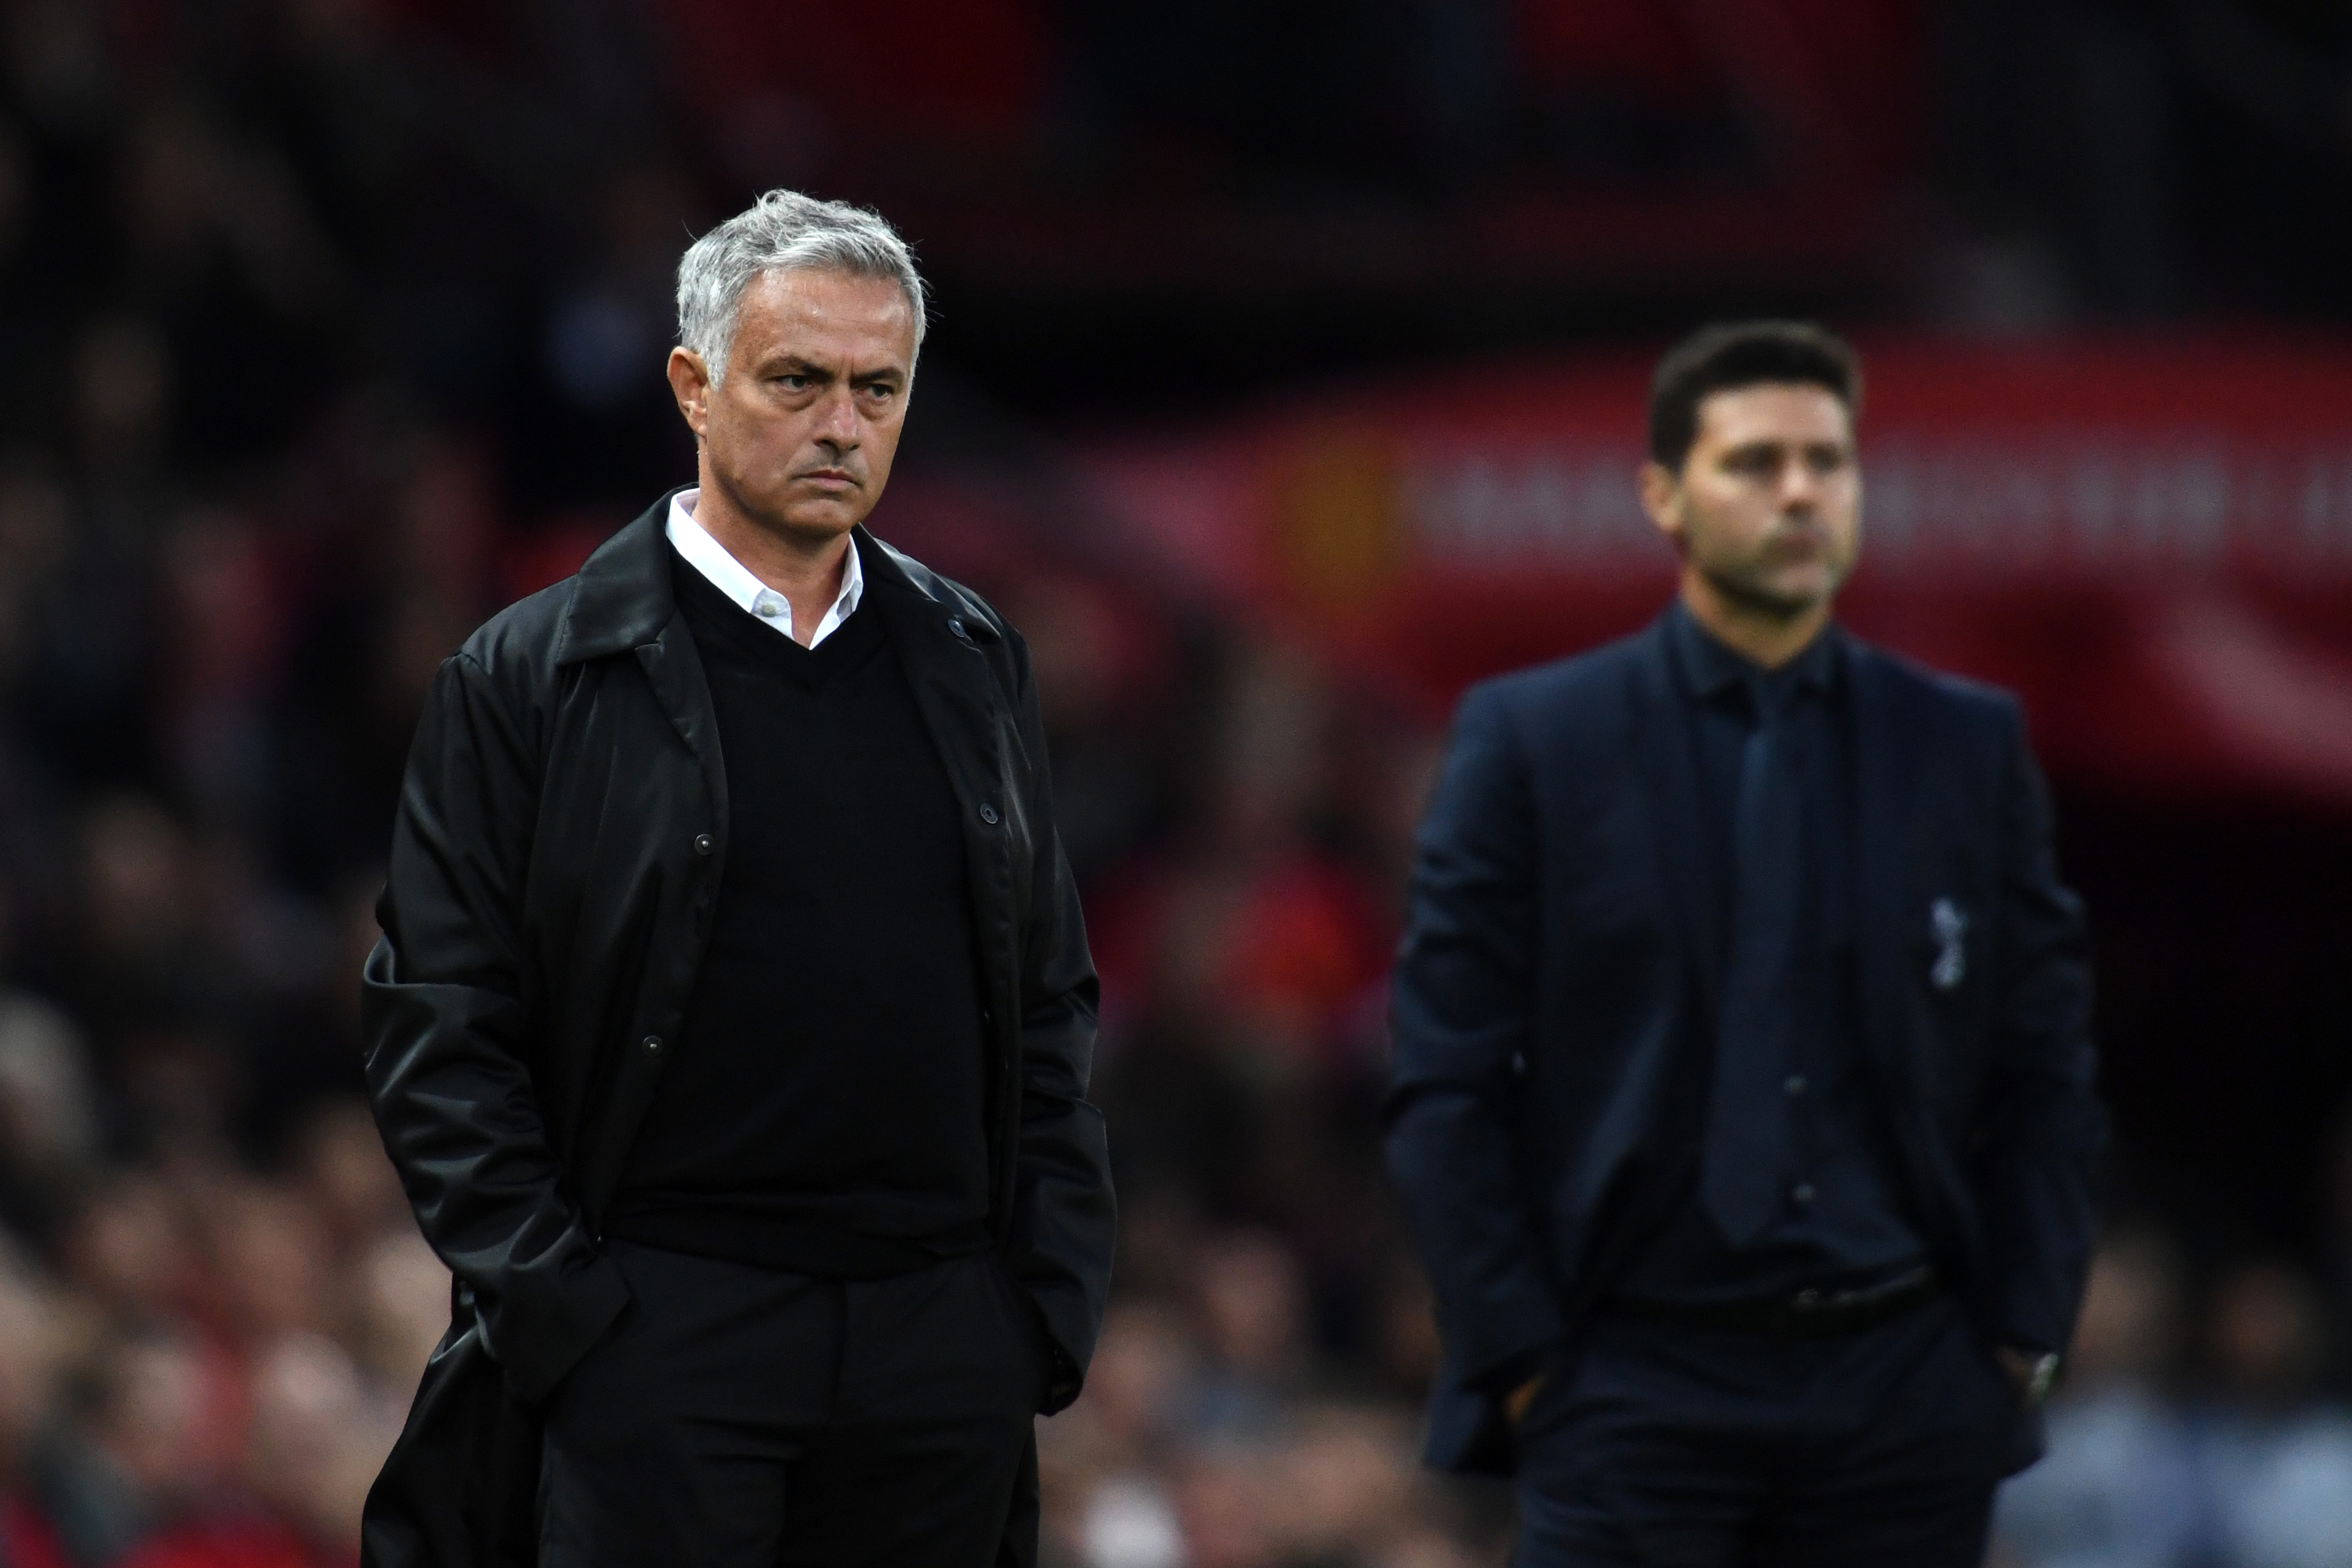 Premier League rumors: Manchester United firing Jose Mourinho?